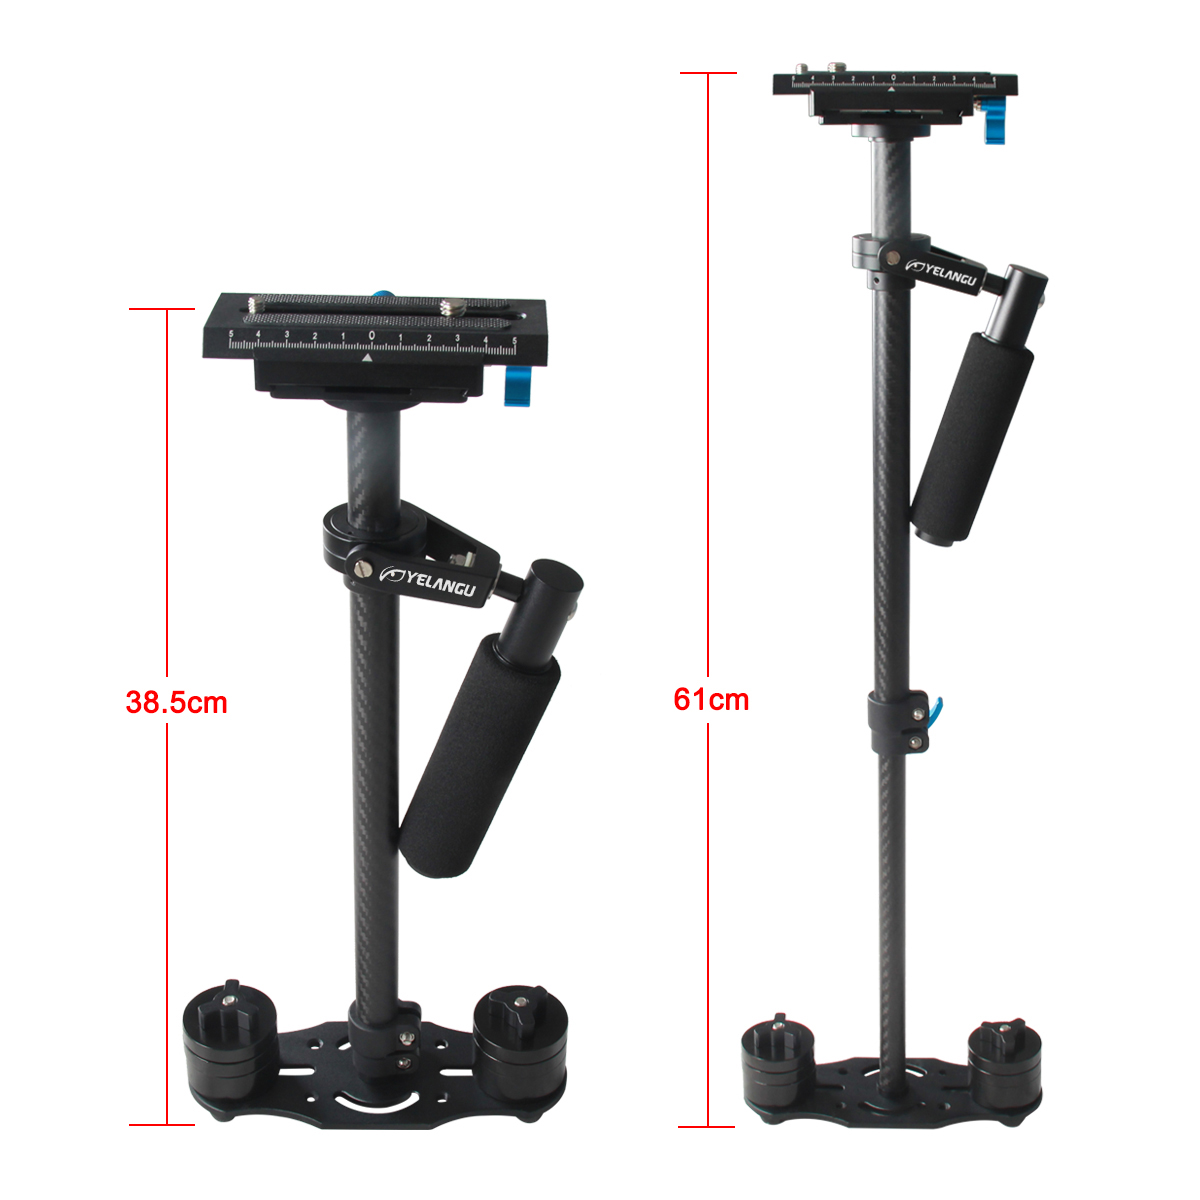 YELANGU Professional 60cm Handheld Camera Stabilizer S60T Support DSLR Camera Camcorders